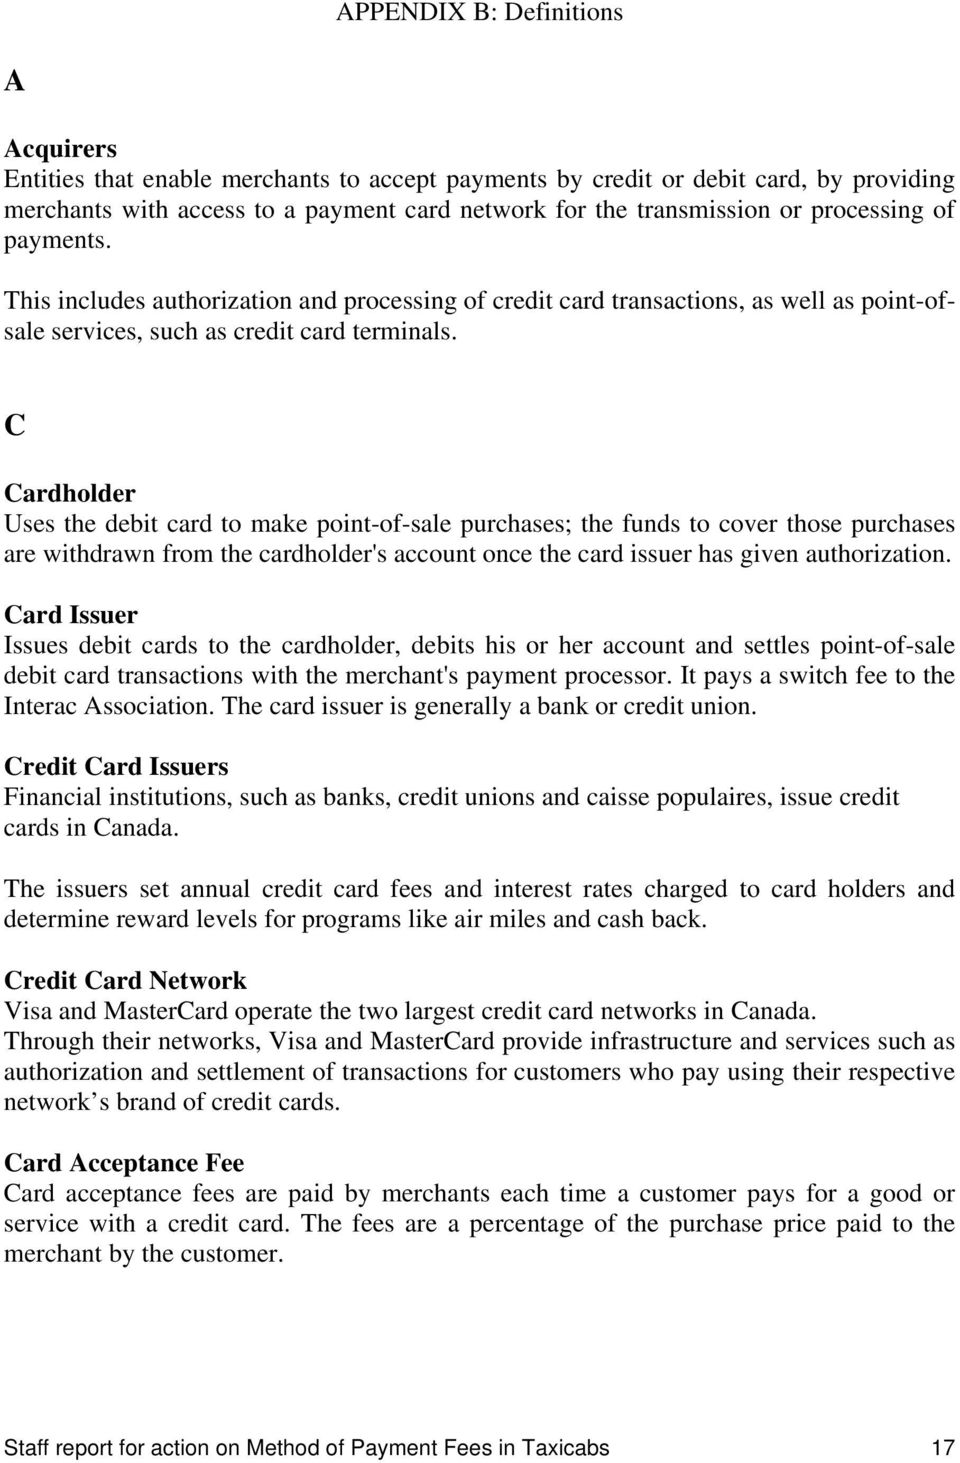 C Cardholder Uses the debit card to make point-of-sale purchases; the funds to cover those purchases are withdrawn from the cardholder's account once the card issuer has given authorization.